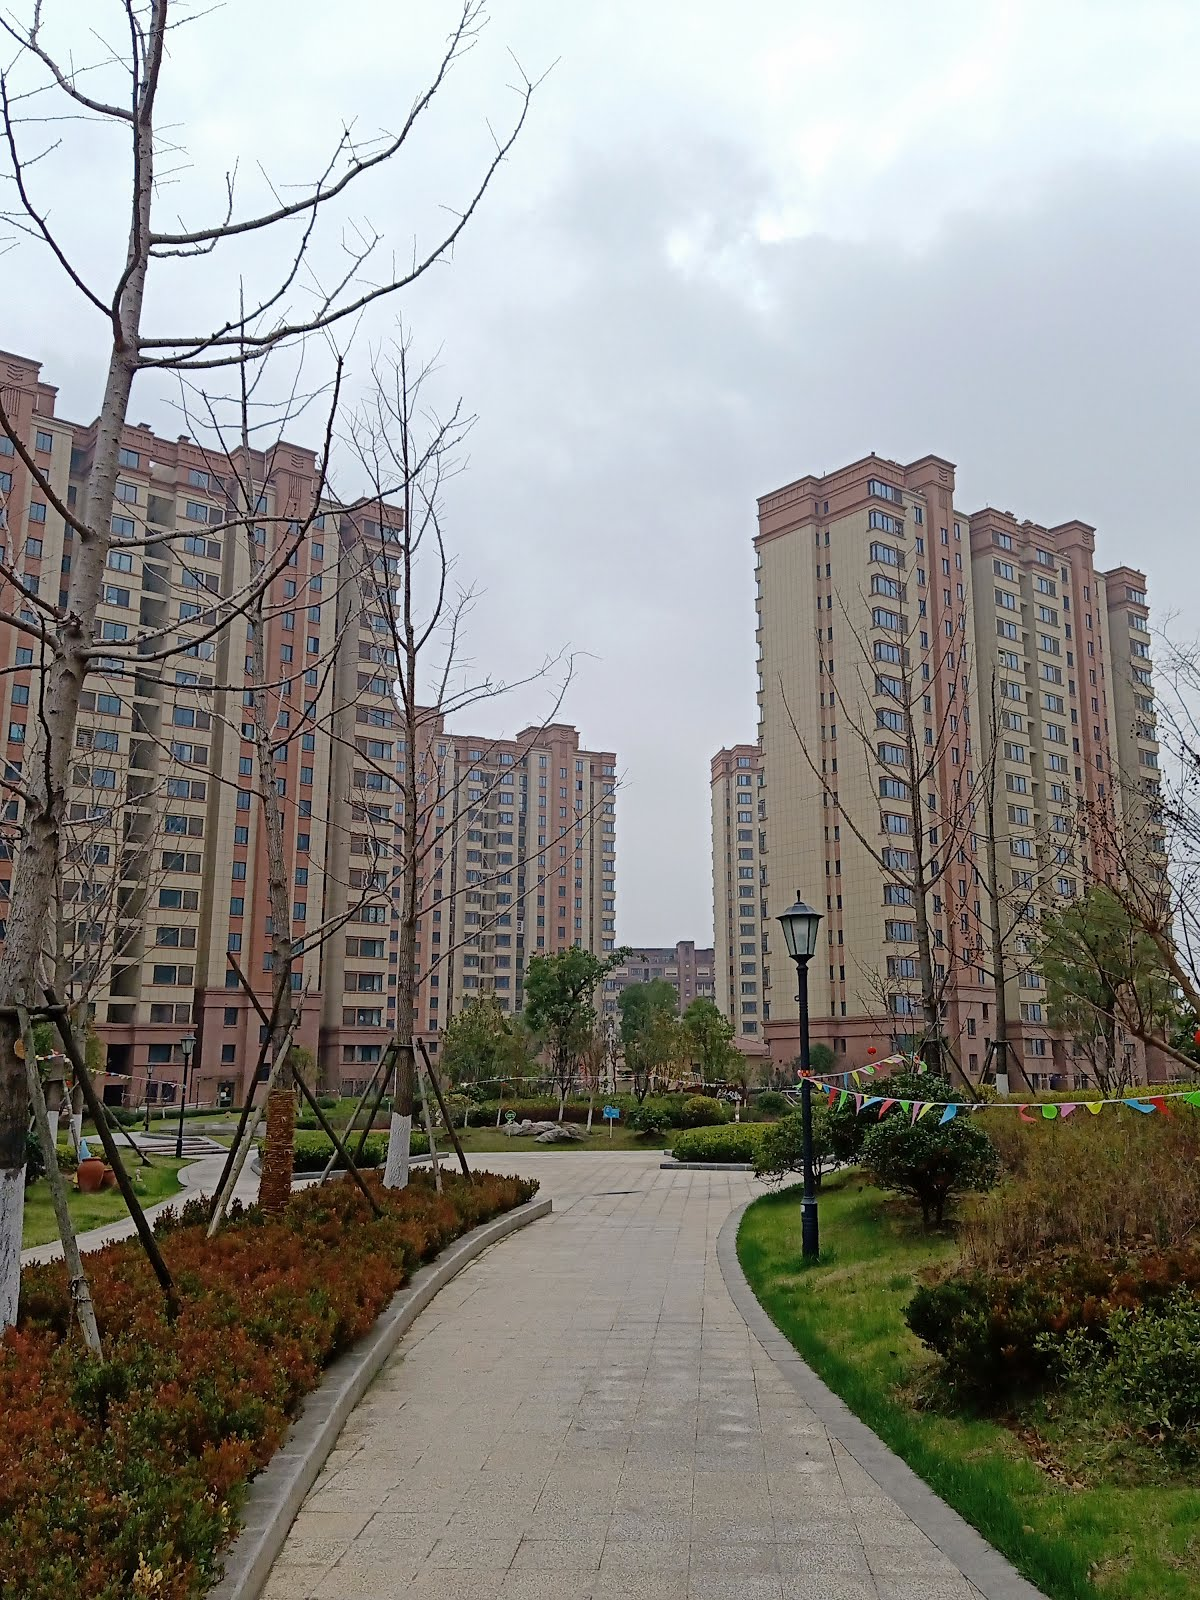 Pengalaman Sewa Apartemen di Nanjing, Cina - Journey of The Week